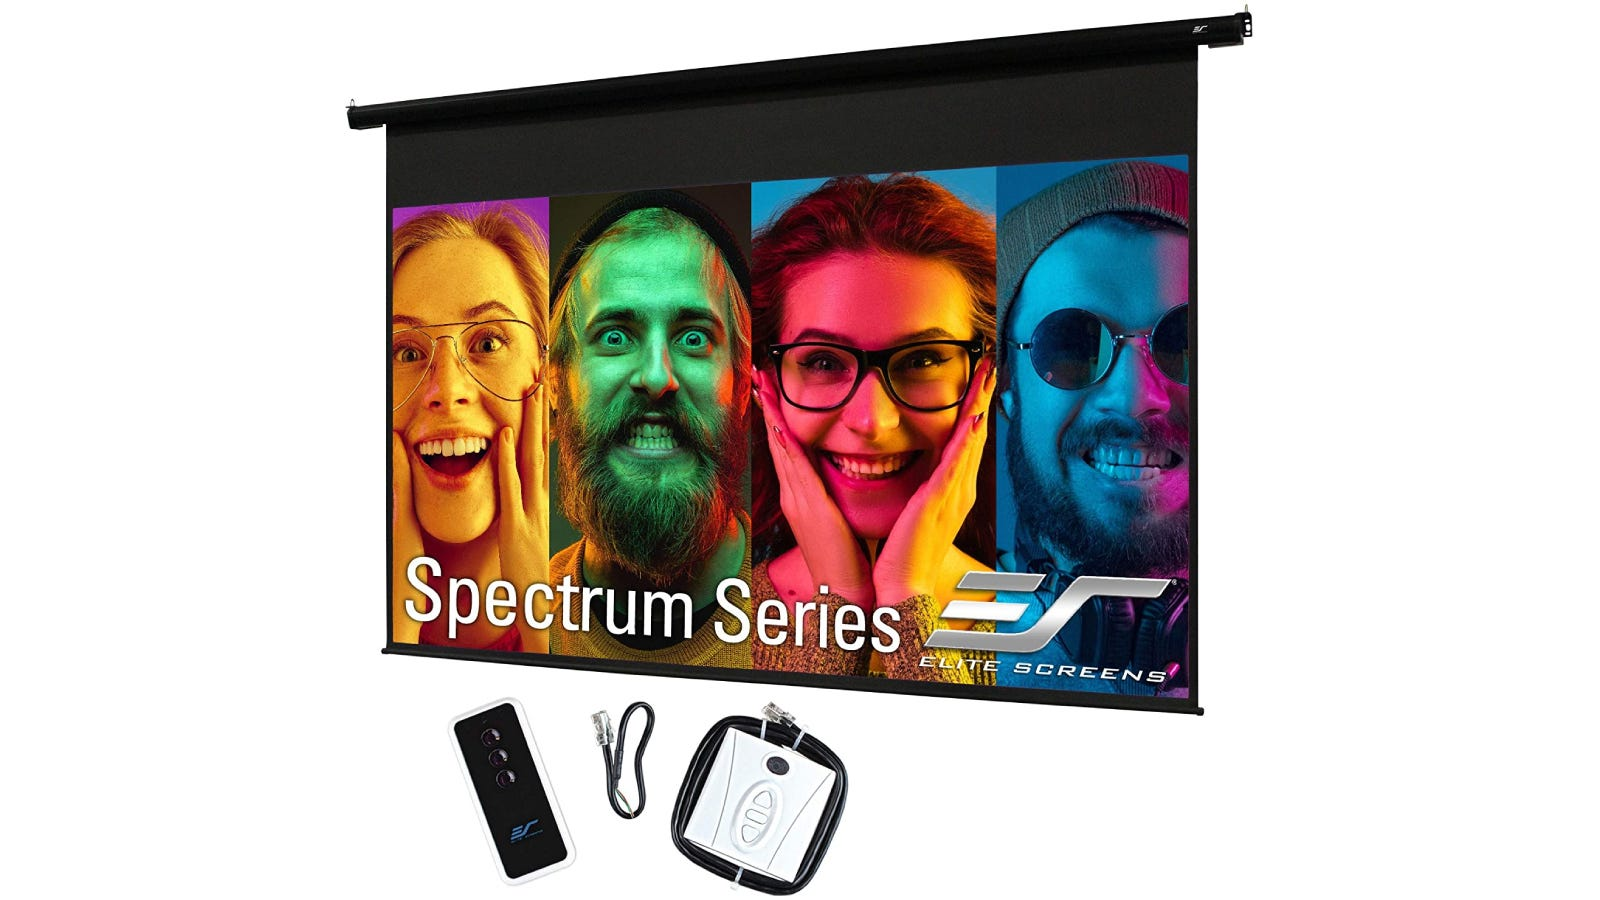 A pull-down projector screen with four different faces on it.